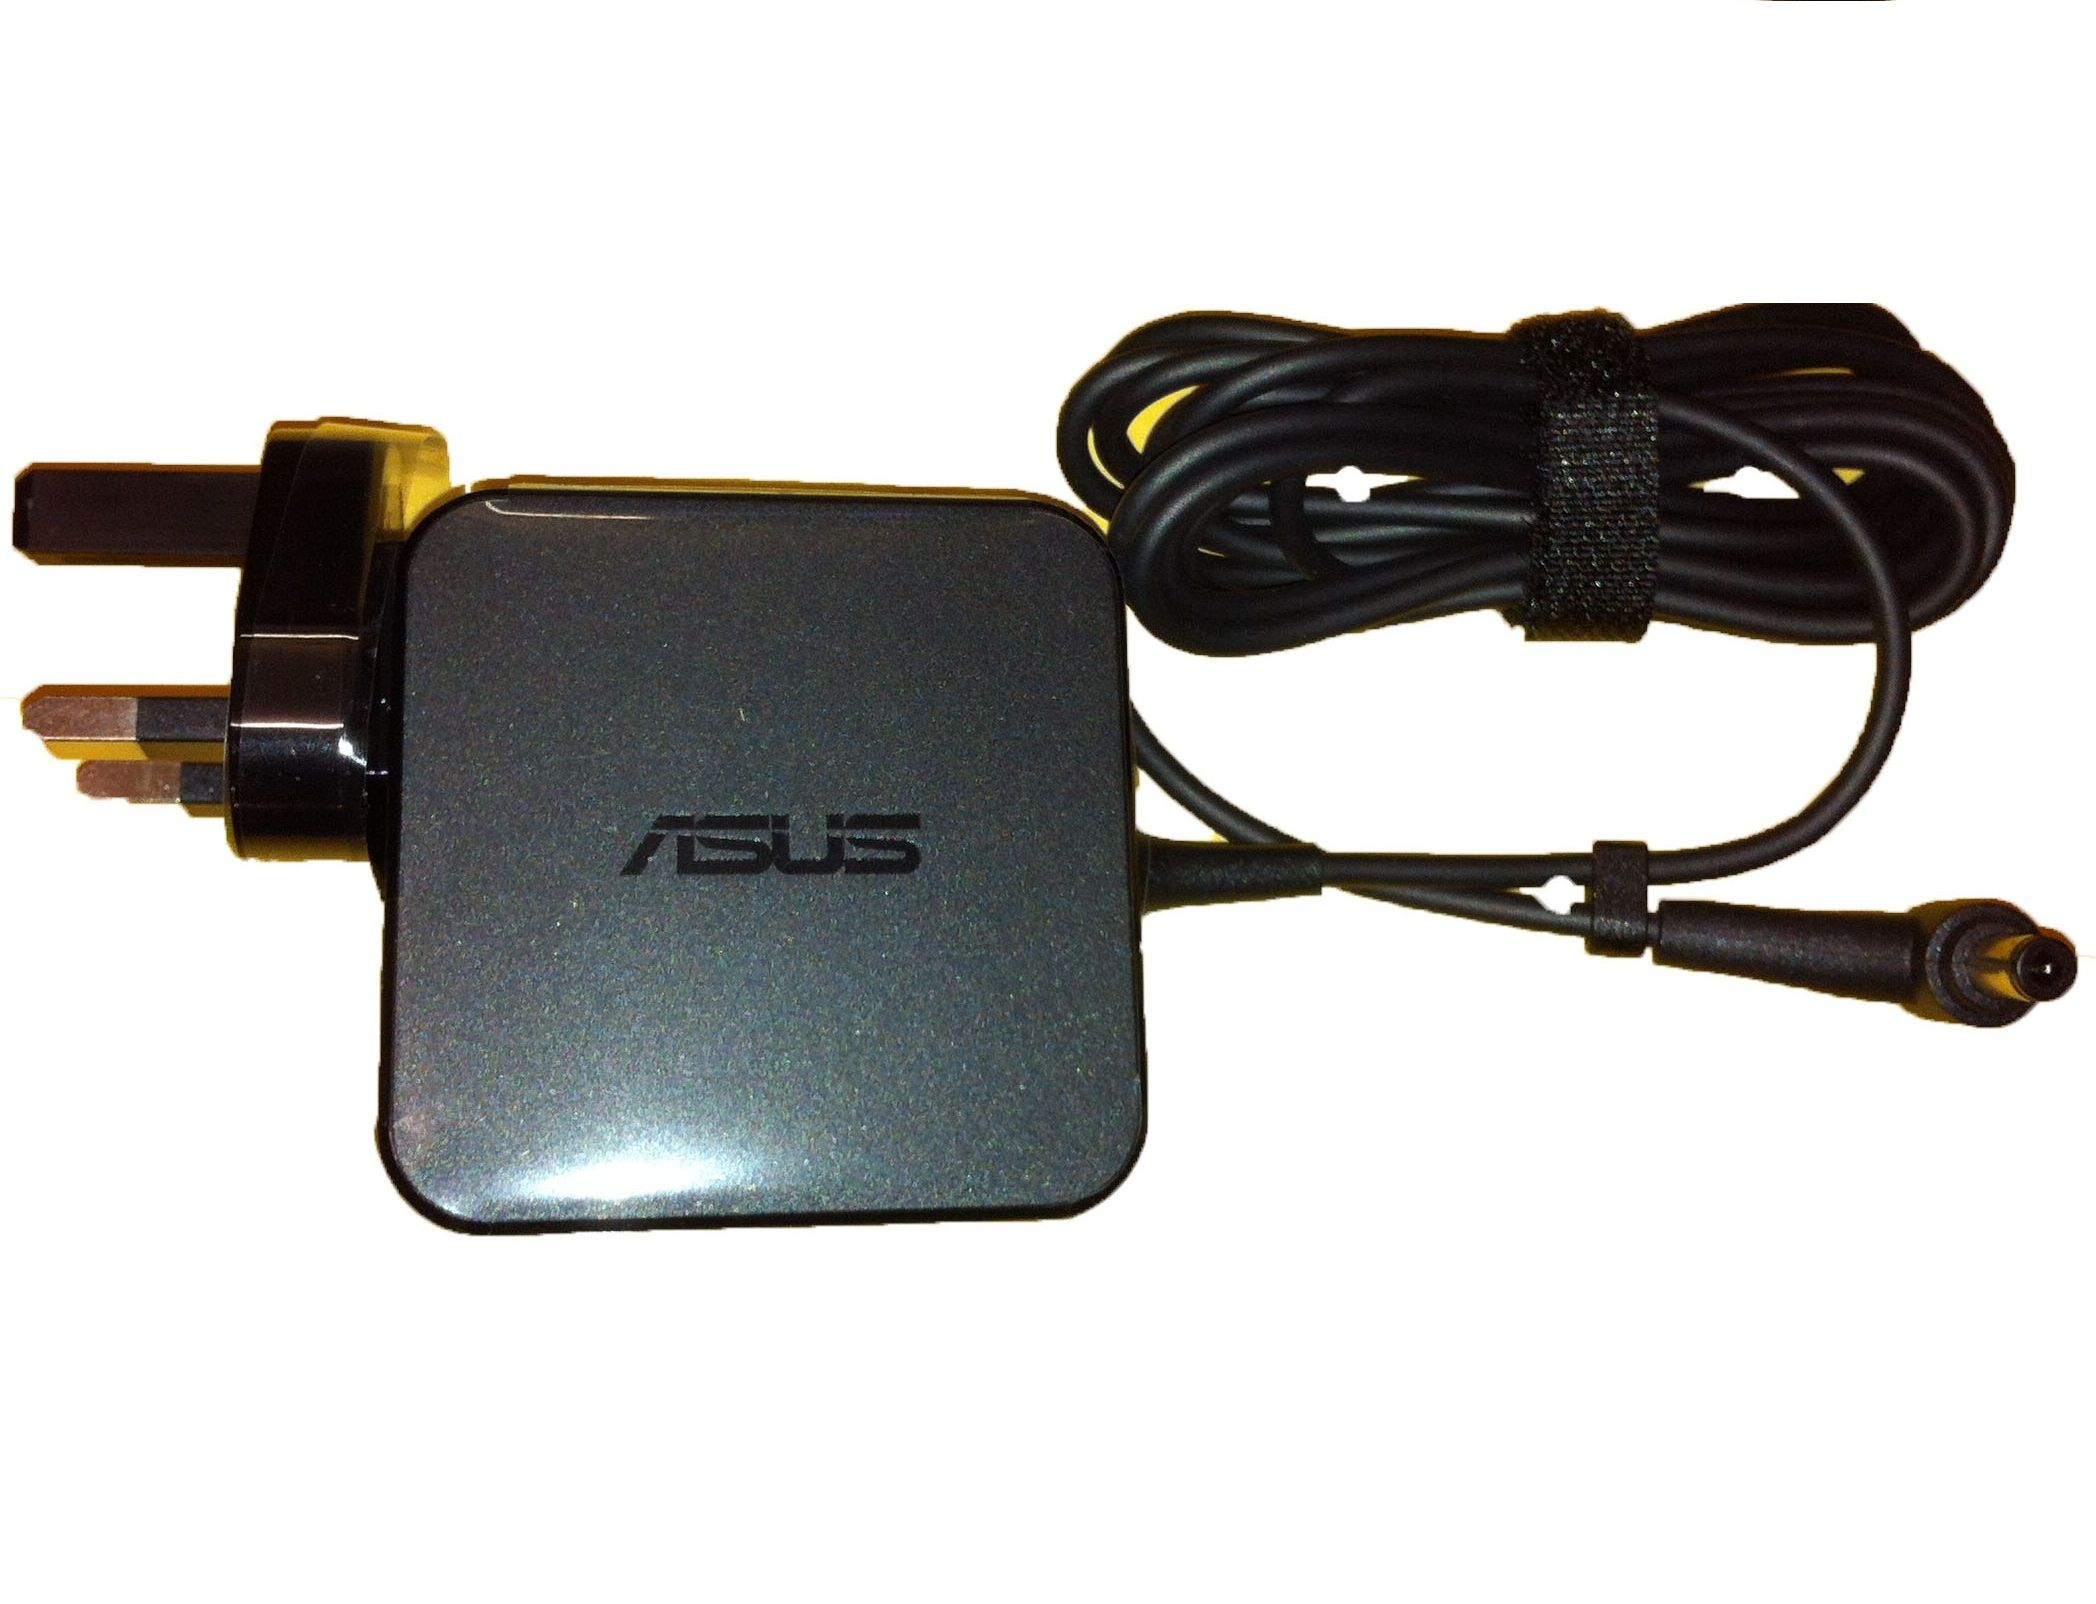 Asus Ad883220 Notebook Charger Asus Ad883220 Charger